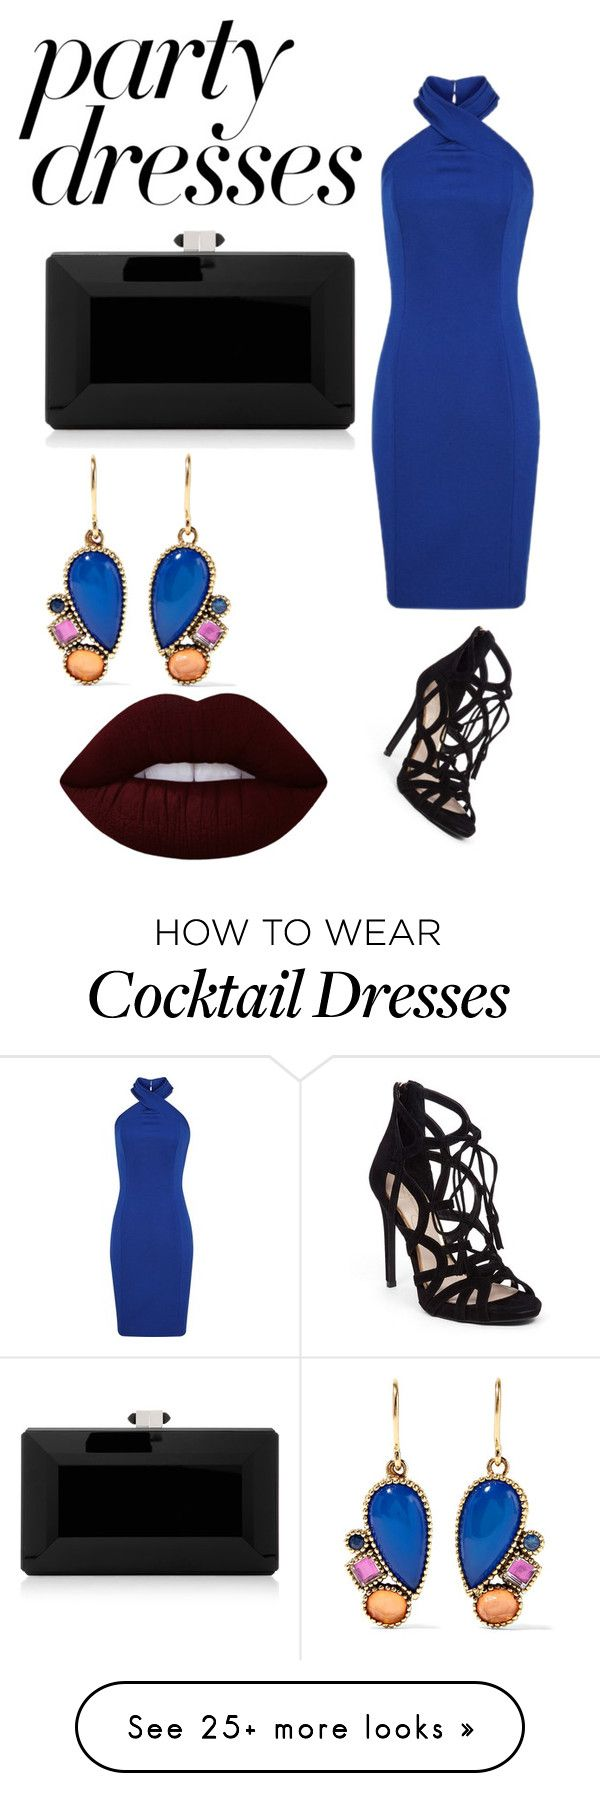 """#PolyPresents: Party Dresses"" by indiaquick923 on Polyvore featuring Judith Leiber, Larkspur & Hawk, Lime Crime, Jessica Simpson, contestentry and polyPresents"